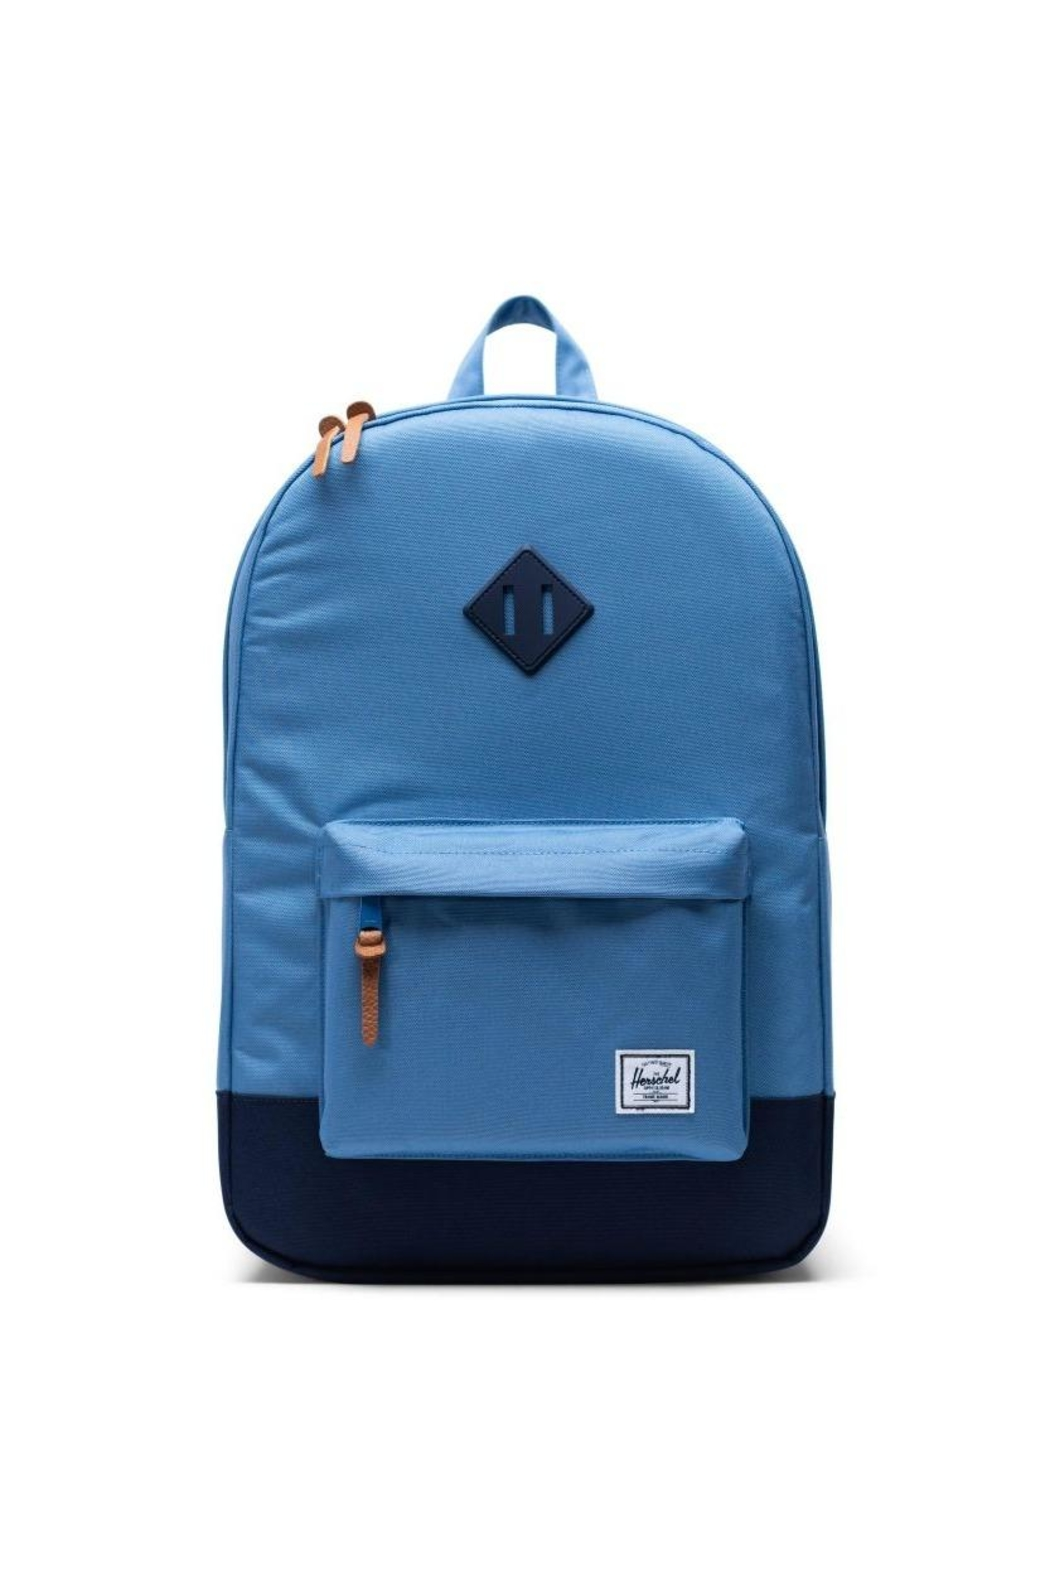 Herschel Supply Co. Blue Heritage Backpack - Front Cropped Image